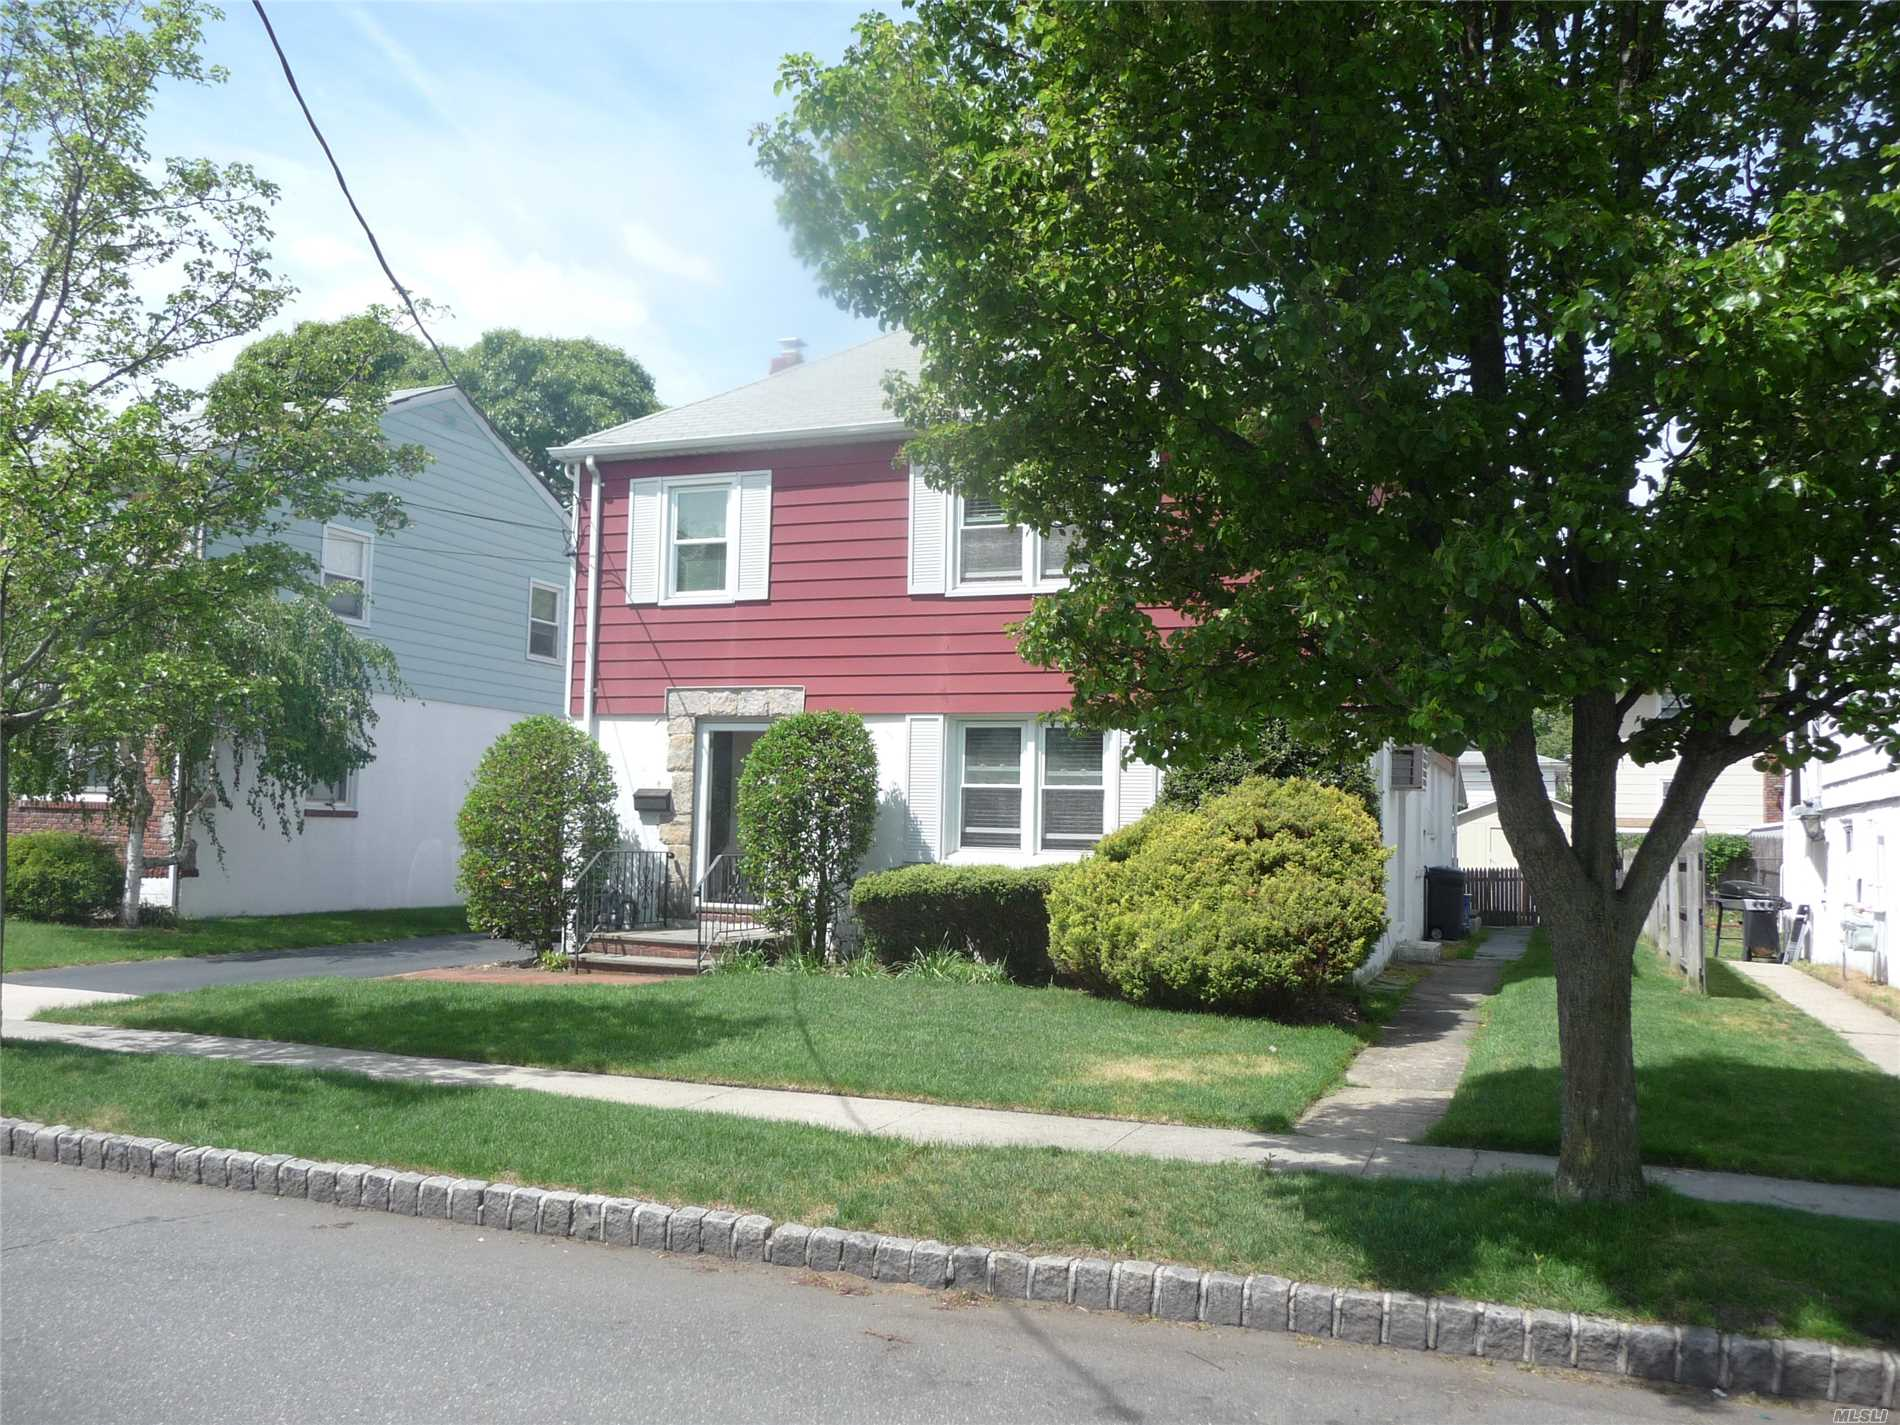 Bright & Spacious 2 Family House. Each Floor Has Living Rm. & Diningt Rm. 2 Bedrooms, Kitchen, Full Bath Long Driveway And Rear Patio